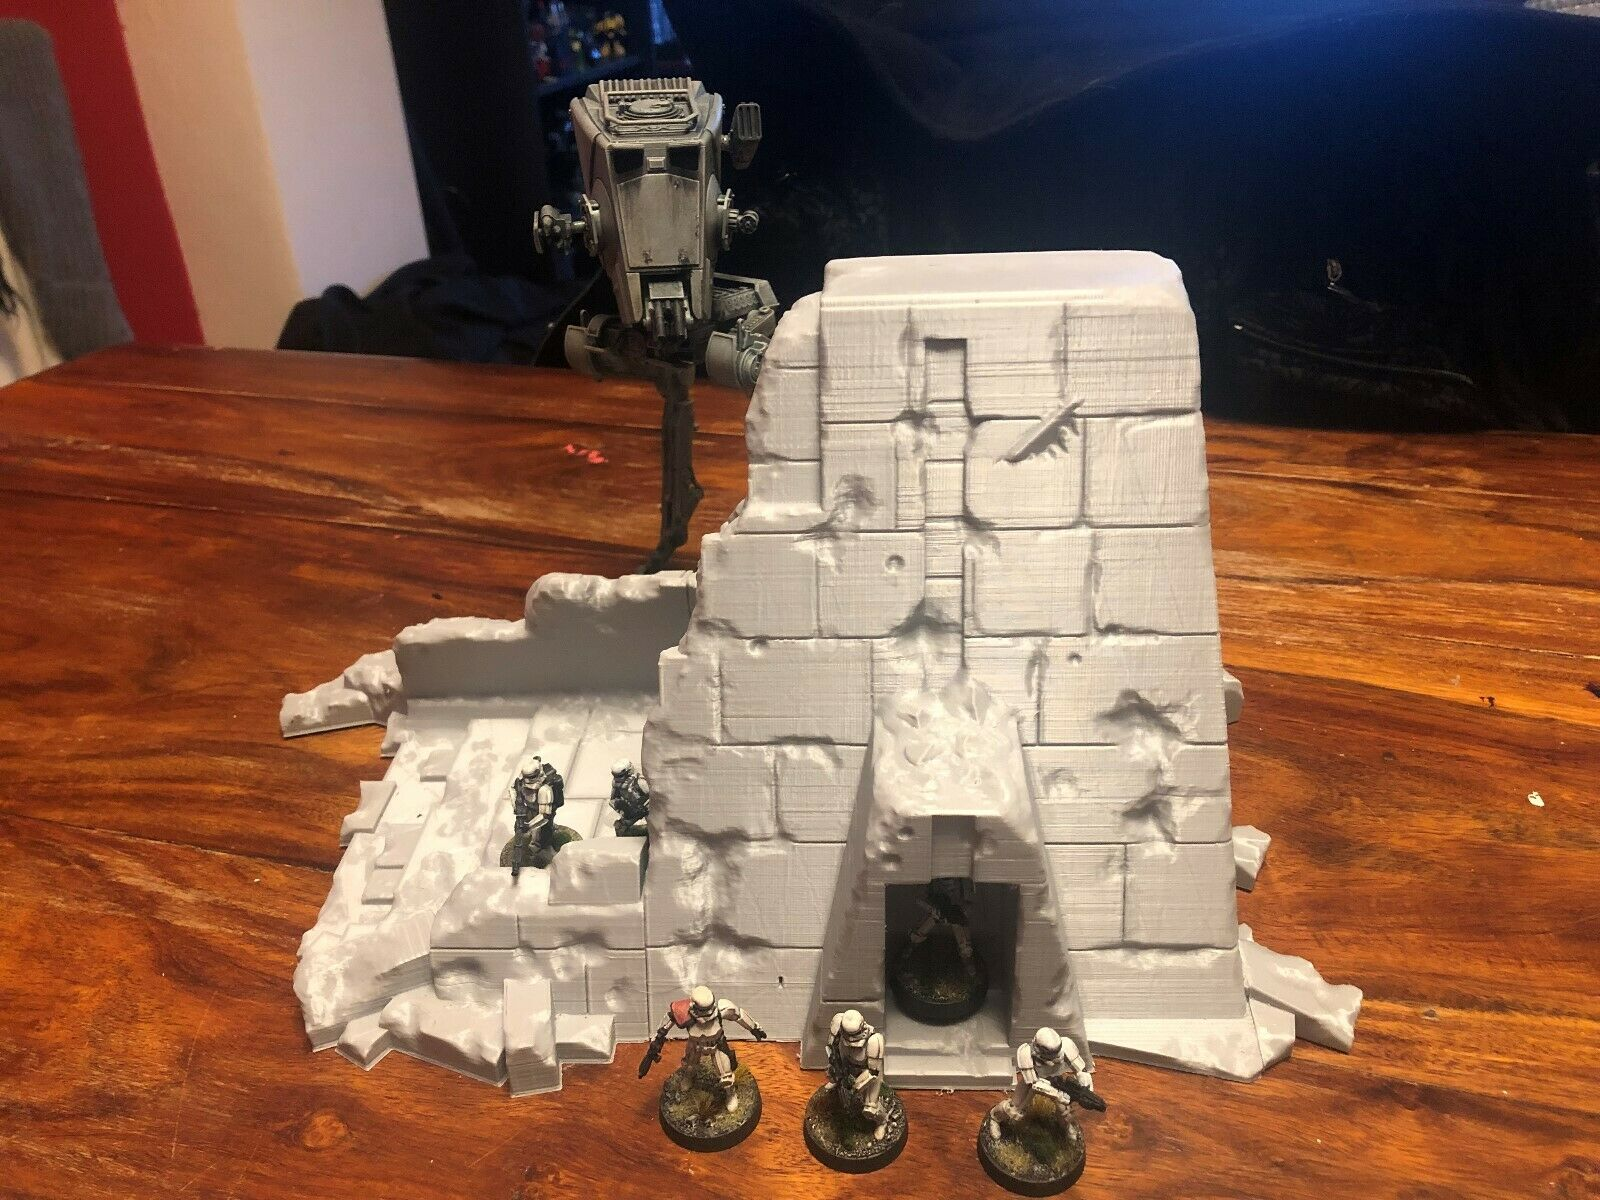 Star Wars Legion, Warhammer 40k, Age of Sigmar Terrain - Ruined Temple Store